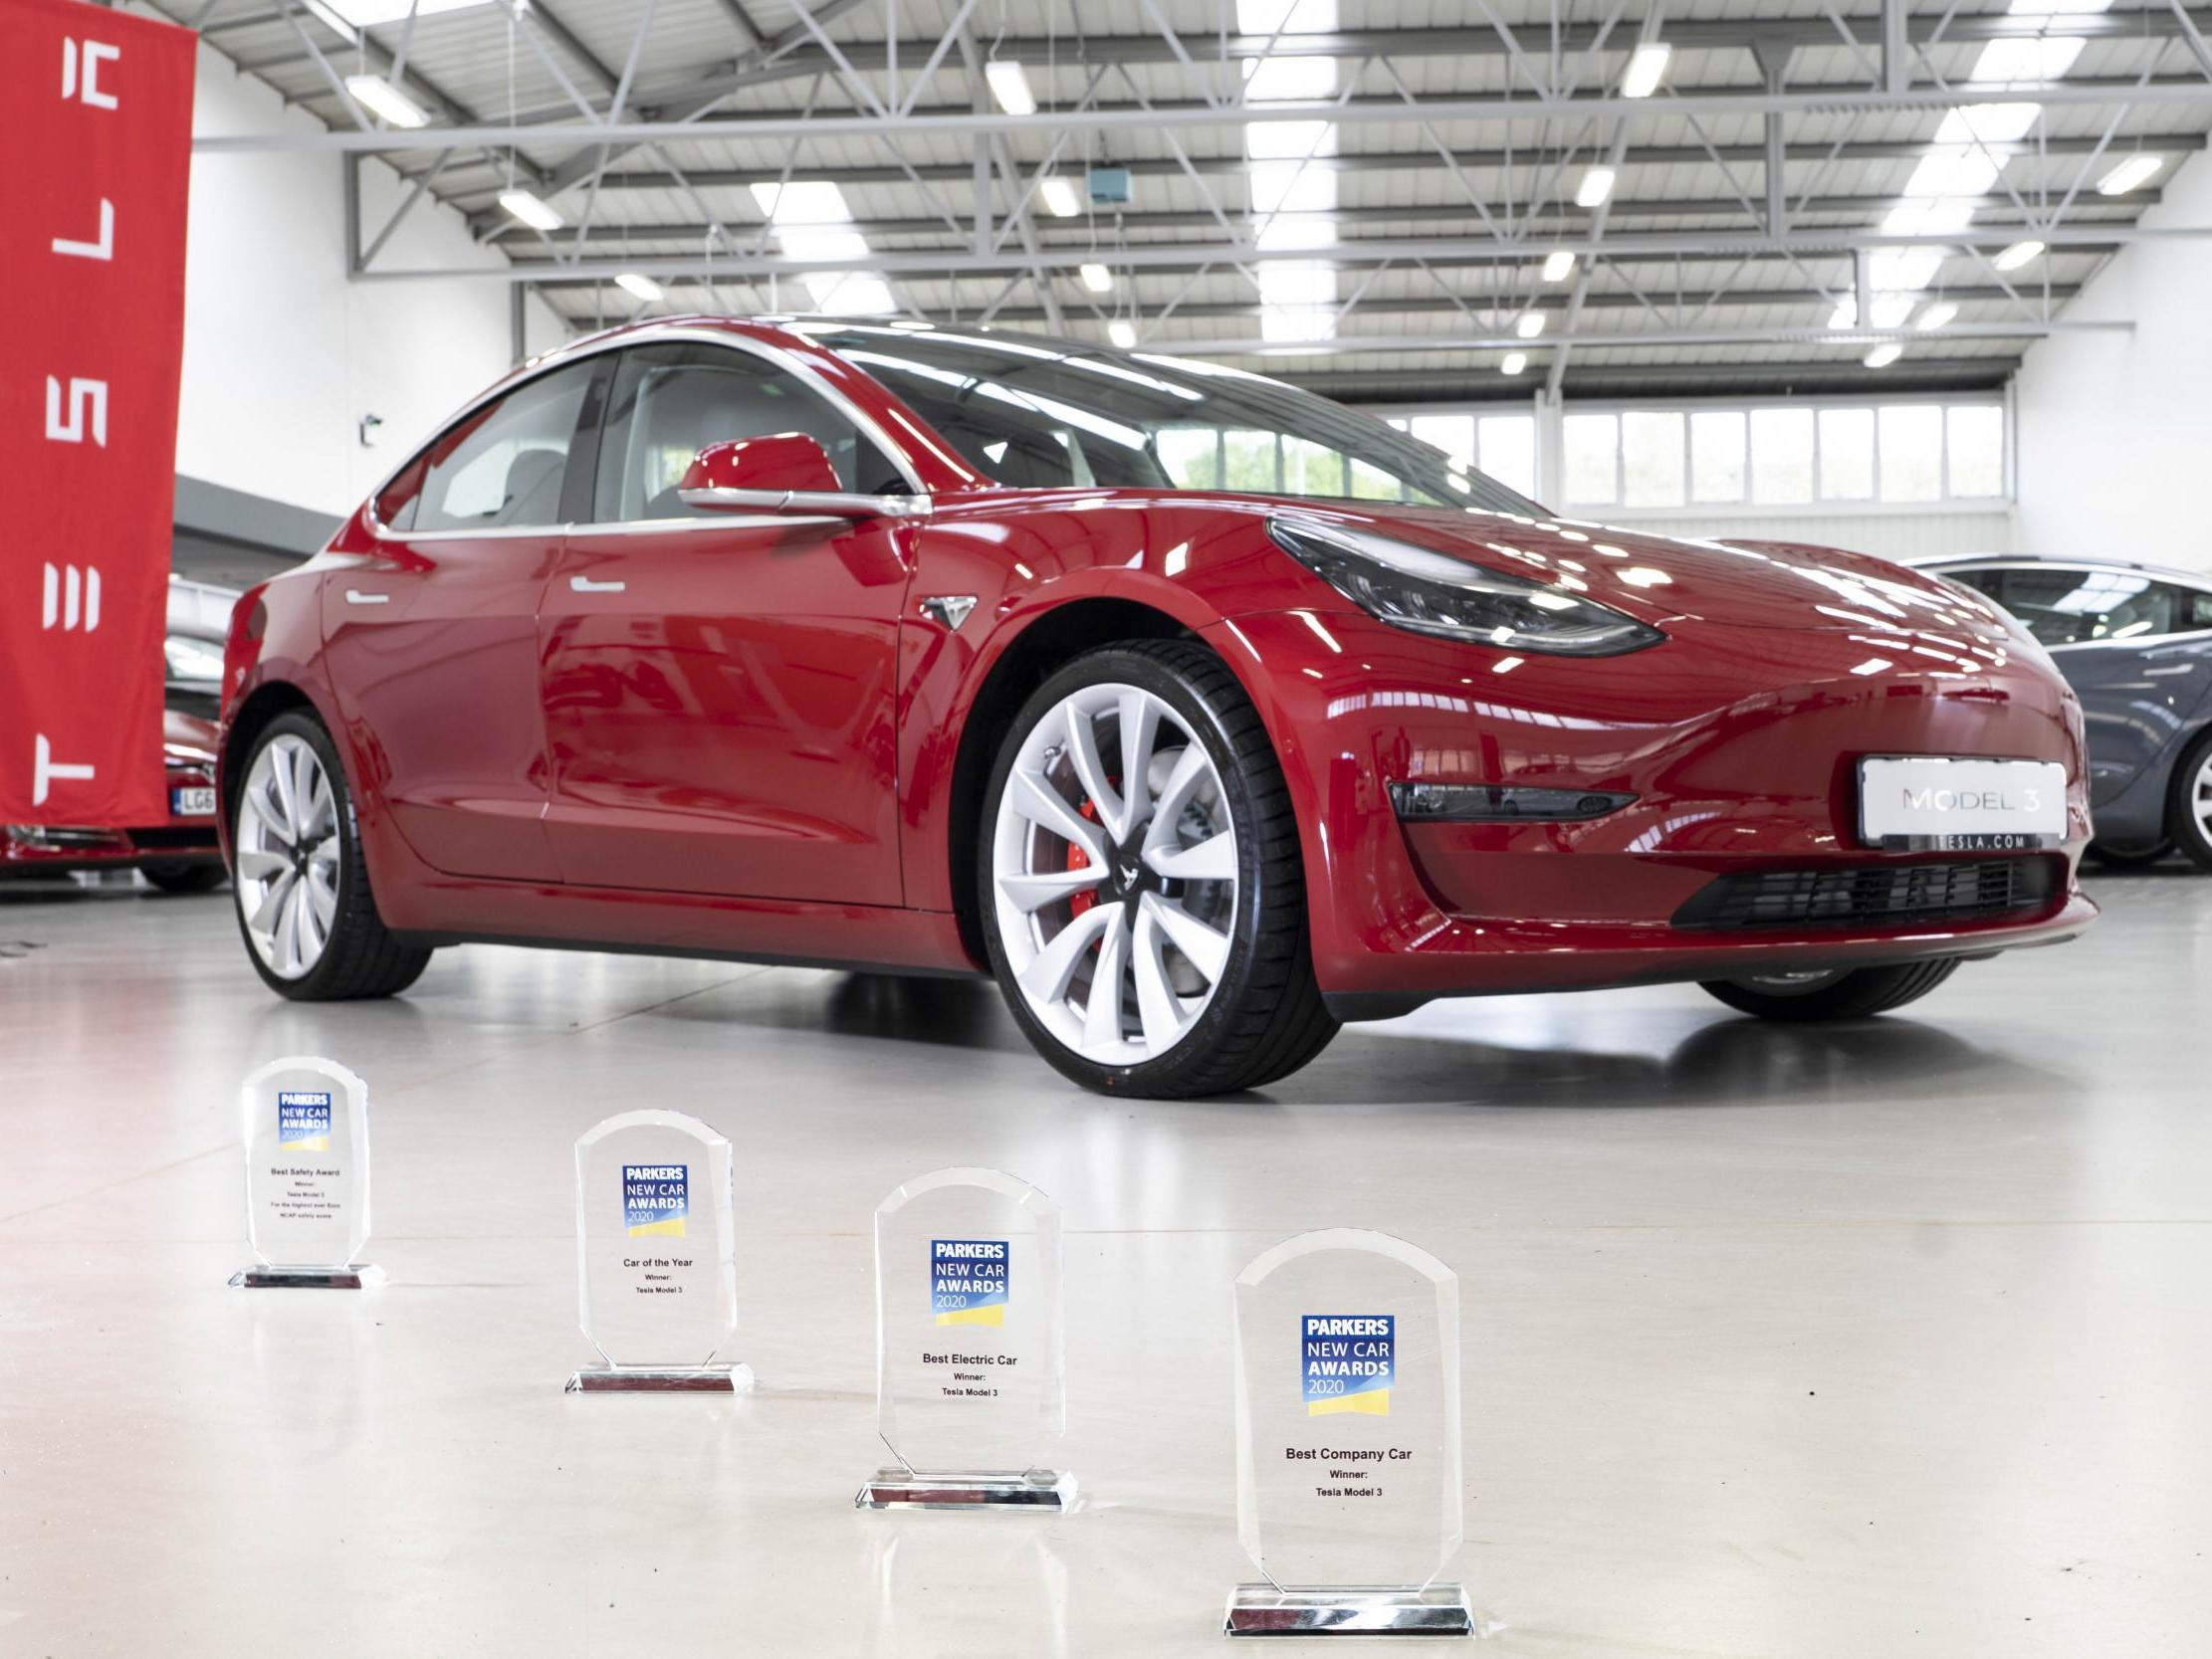 Tesla's cheapest electric vehicle wins top prize at car